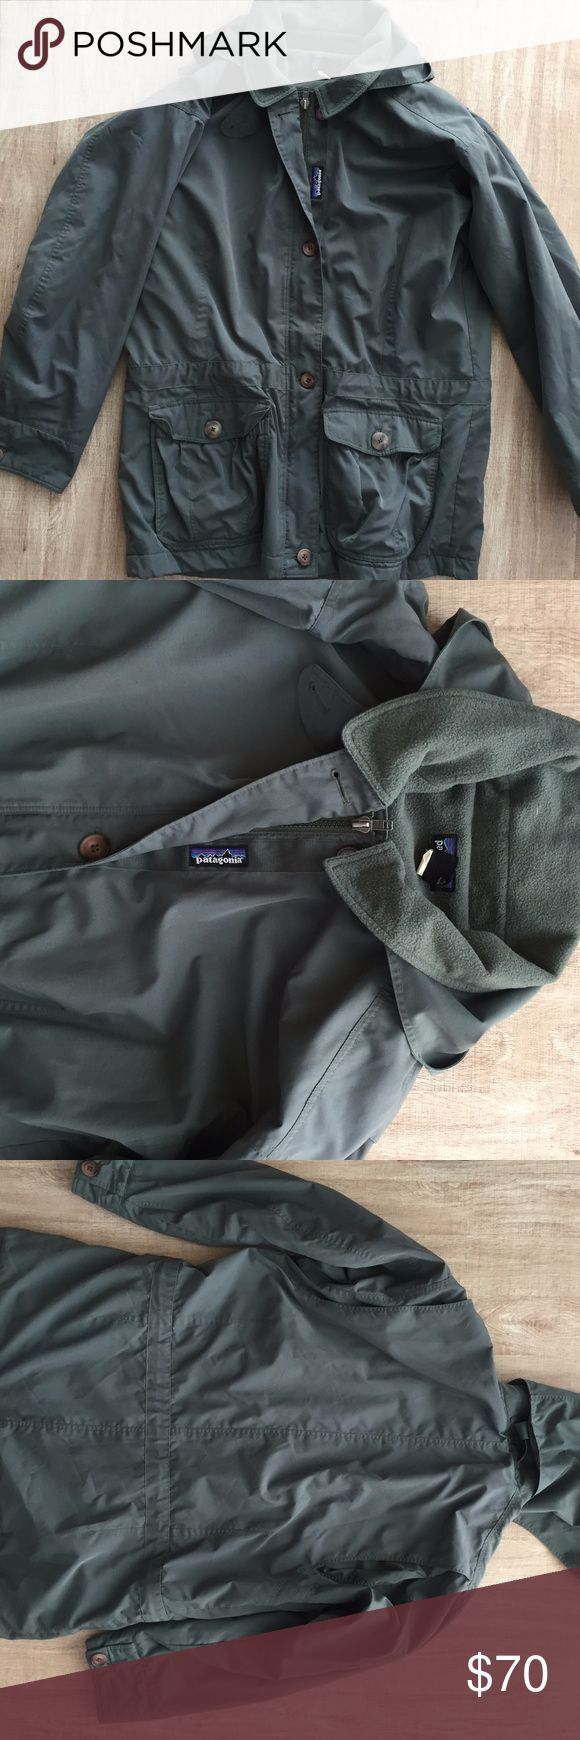 "Patagonia Parka Fleece Lined Jacket Green Cargo M Patagonia military cargo Parka Women's size Medium (Can Fit Large)  great pre owned vintage condition Features four exterior pockets as well as one interior 100% polyester fleece lined interior for warmth Button and full zip up front Removable hood only flaw to mention is some slight red discoloration on lower side seam near left front bottom pocket (see photos) No holes or rips Worn with plenty of life left!  Measurements 32"" base of collar…"